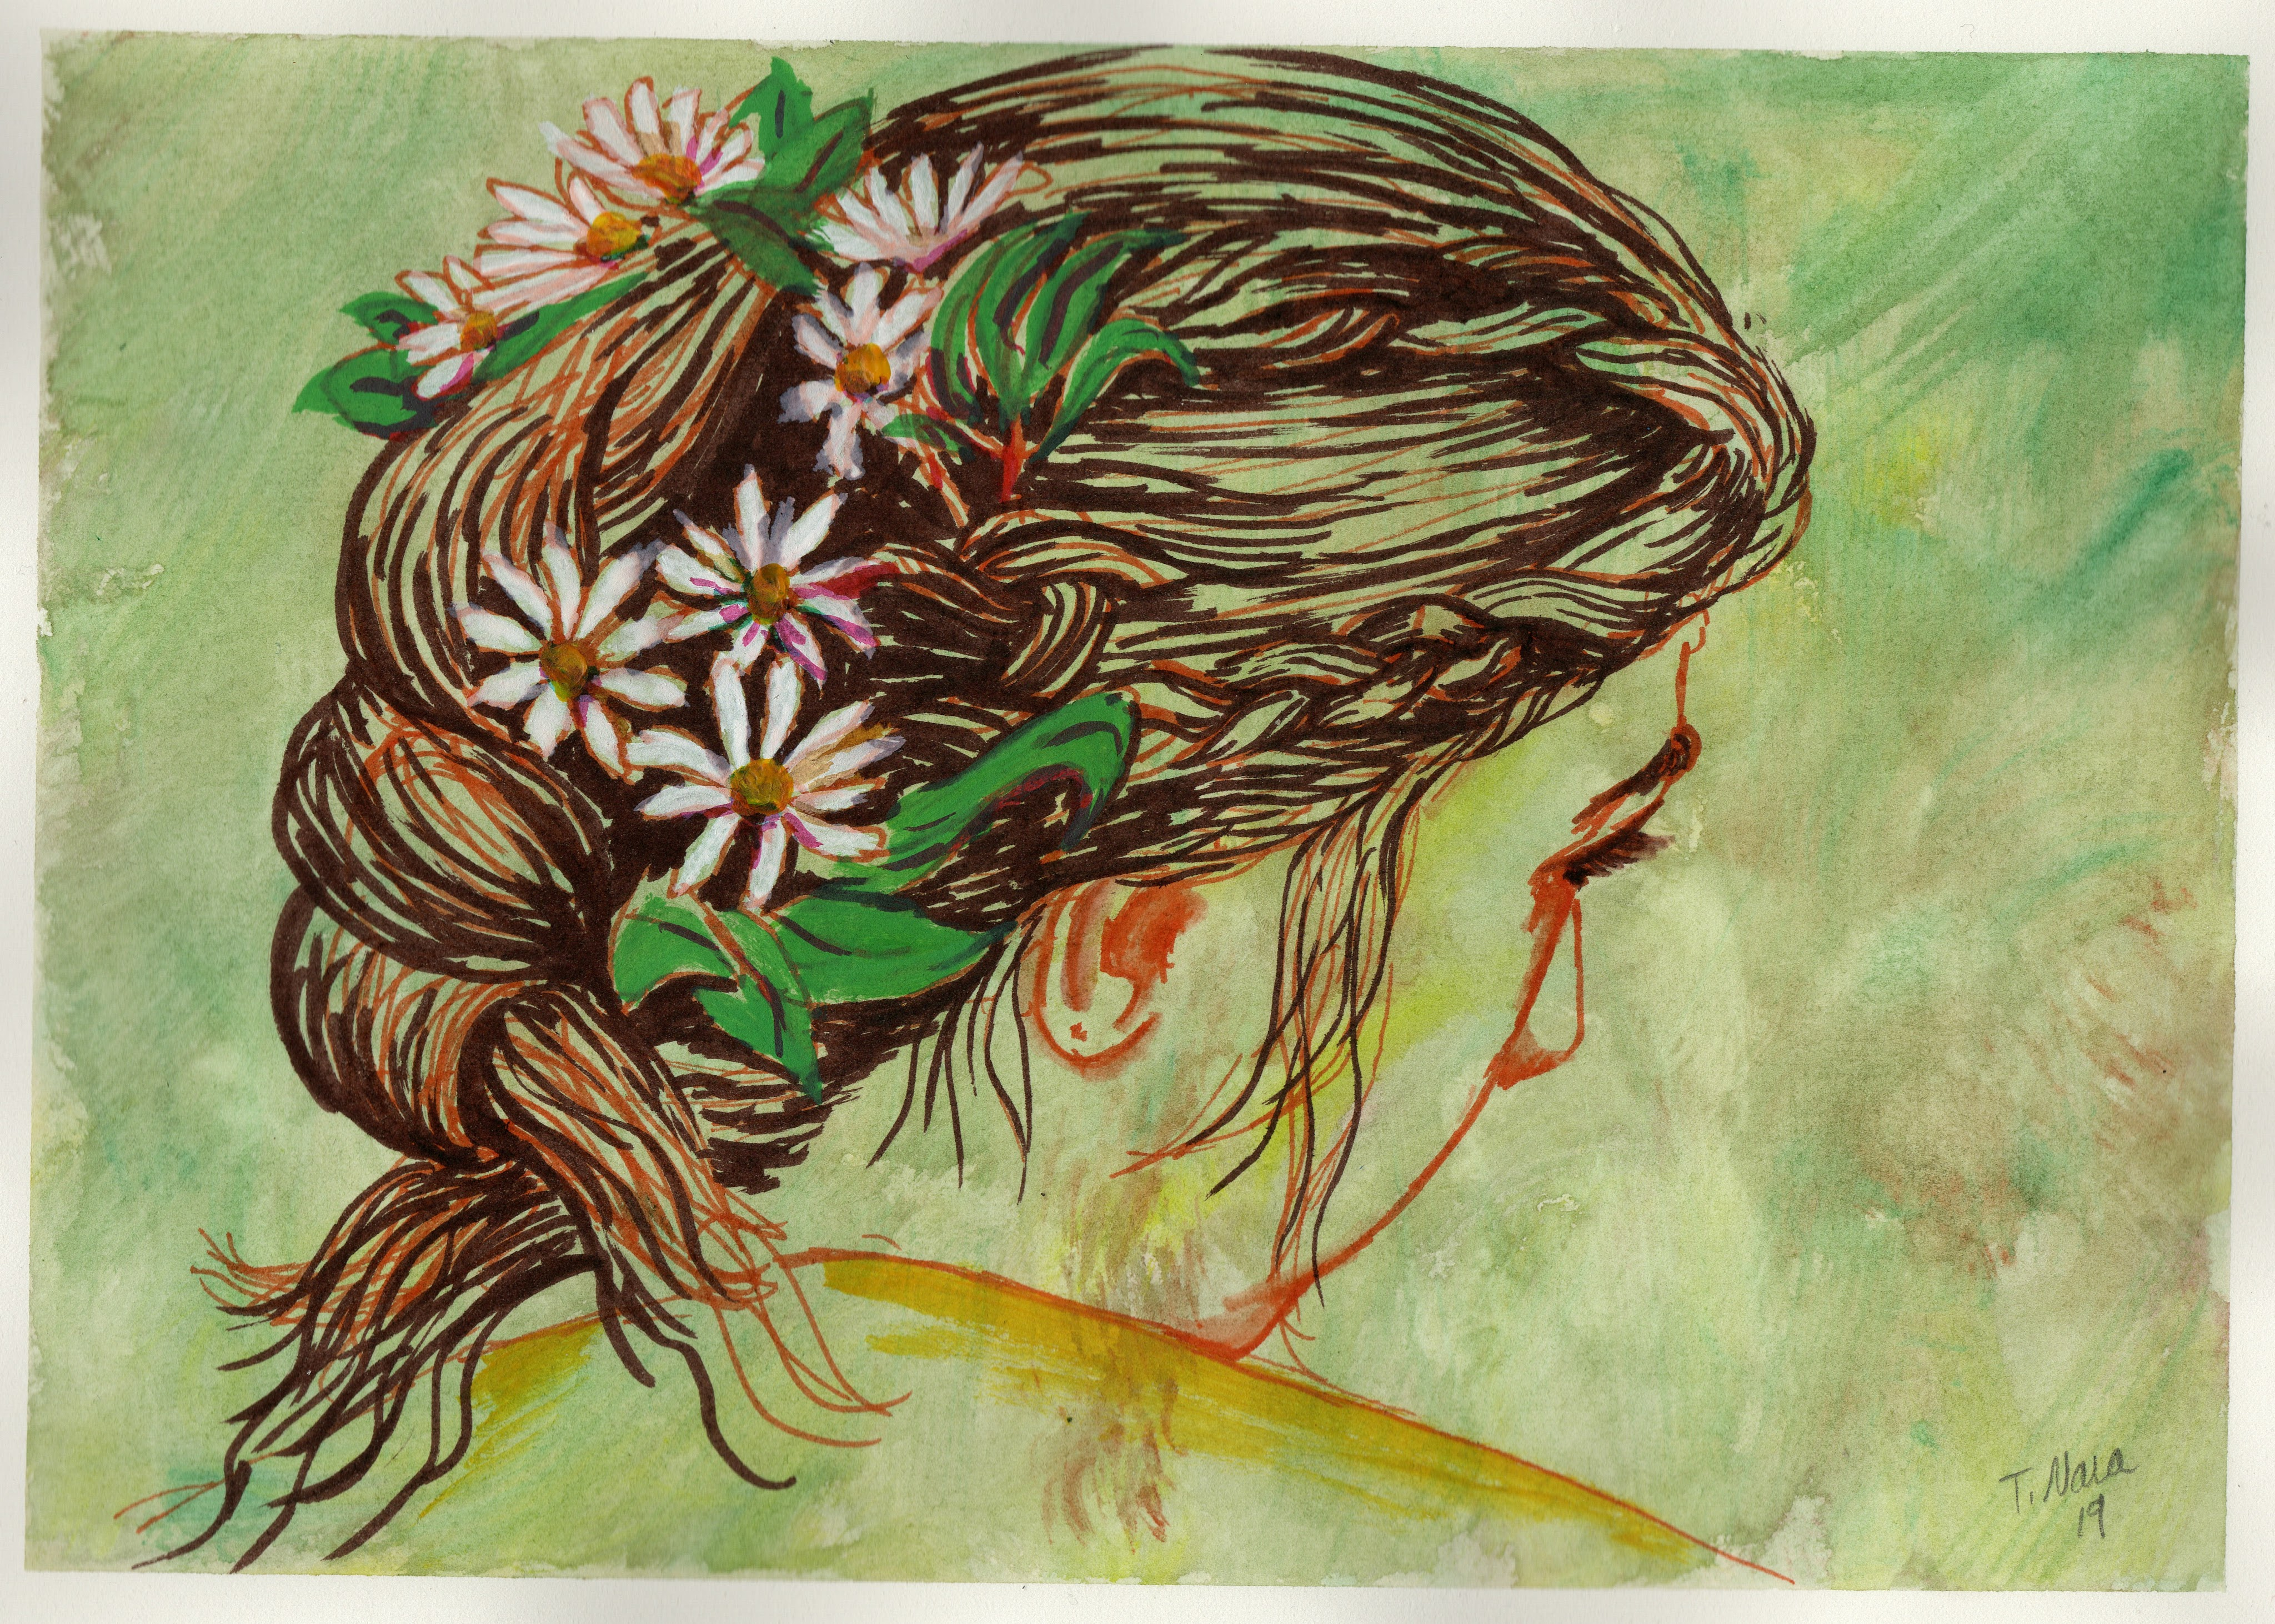 semi-abstract painting of a woman with flowers in her braided hair